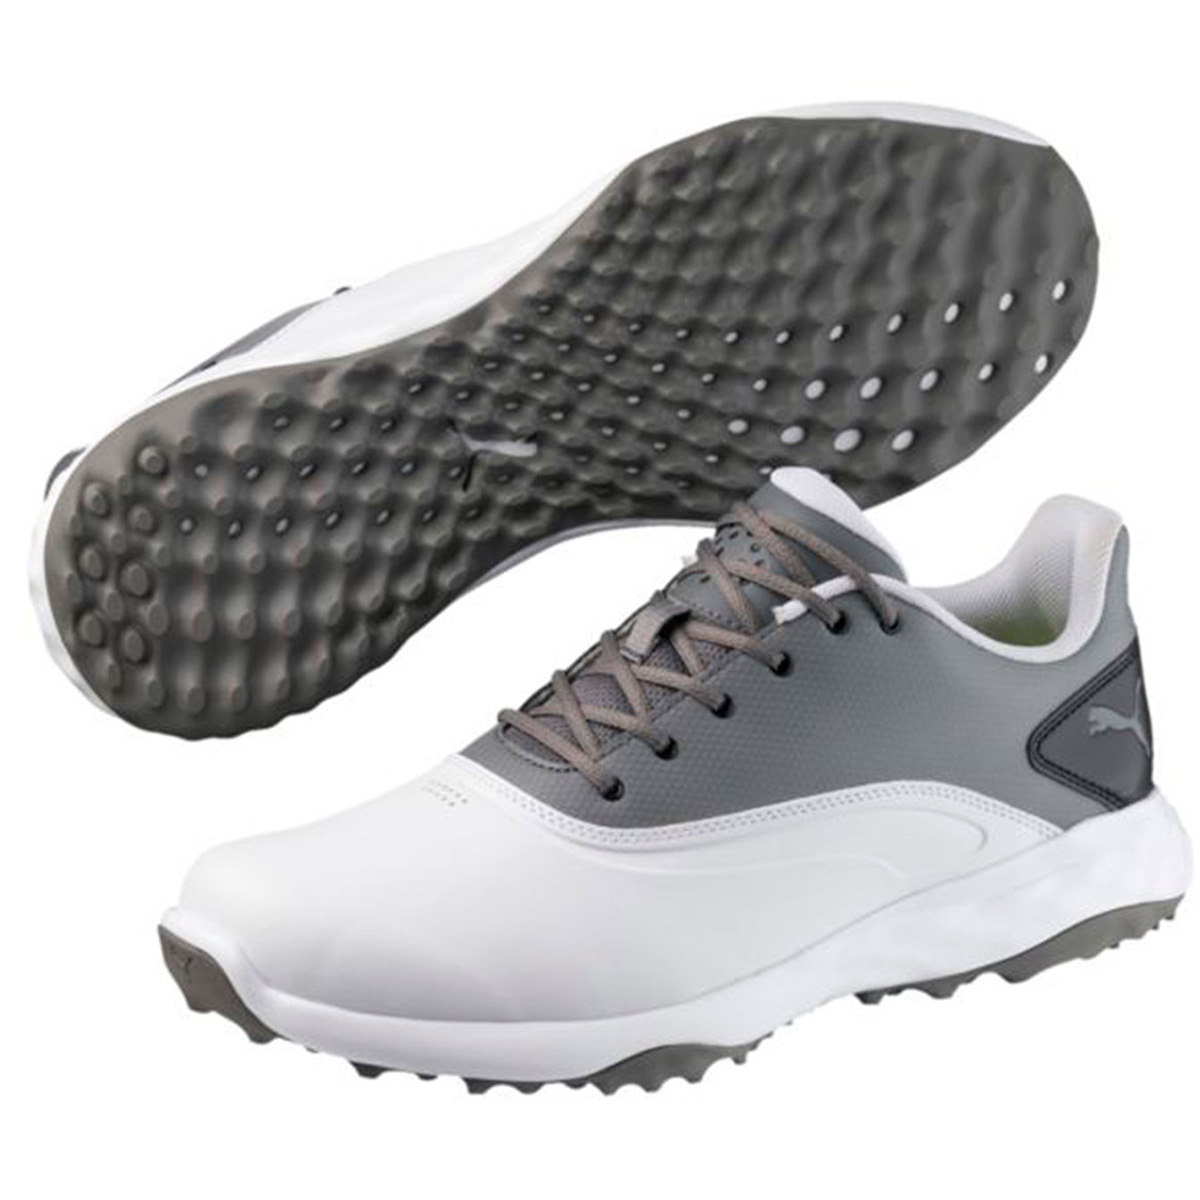 PUMA Golf Grip Fusion Shoes from american golf 5bfd2d1e19e